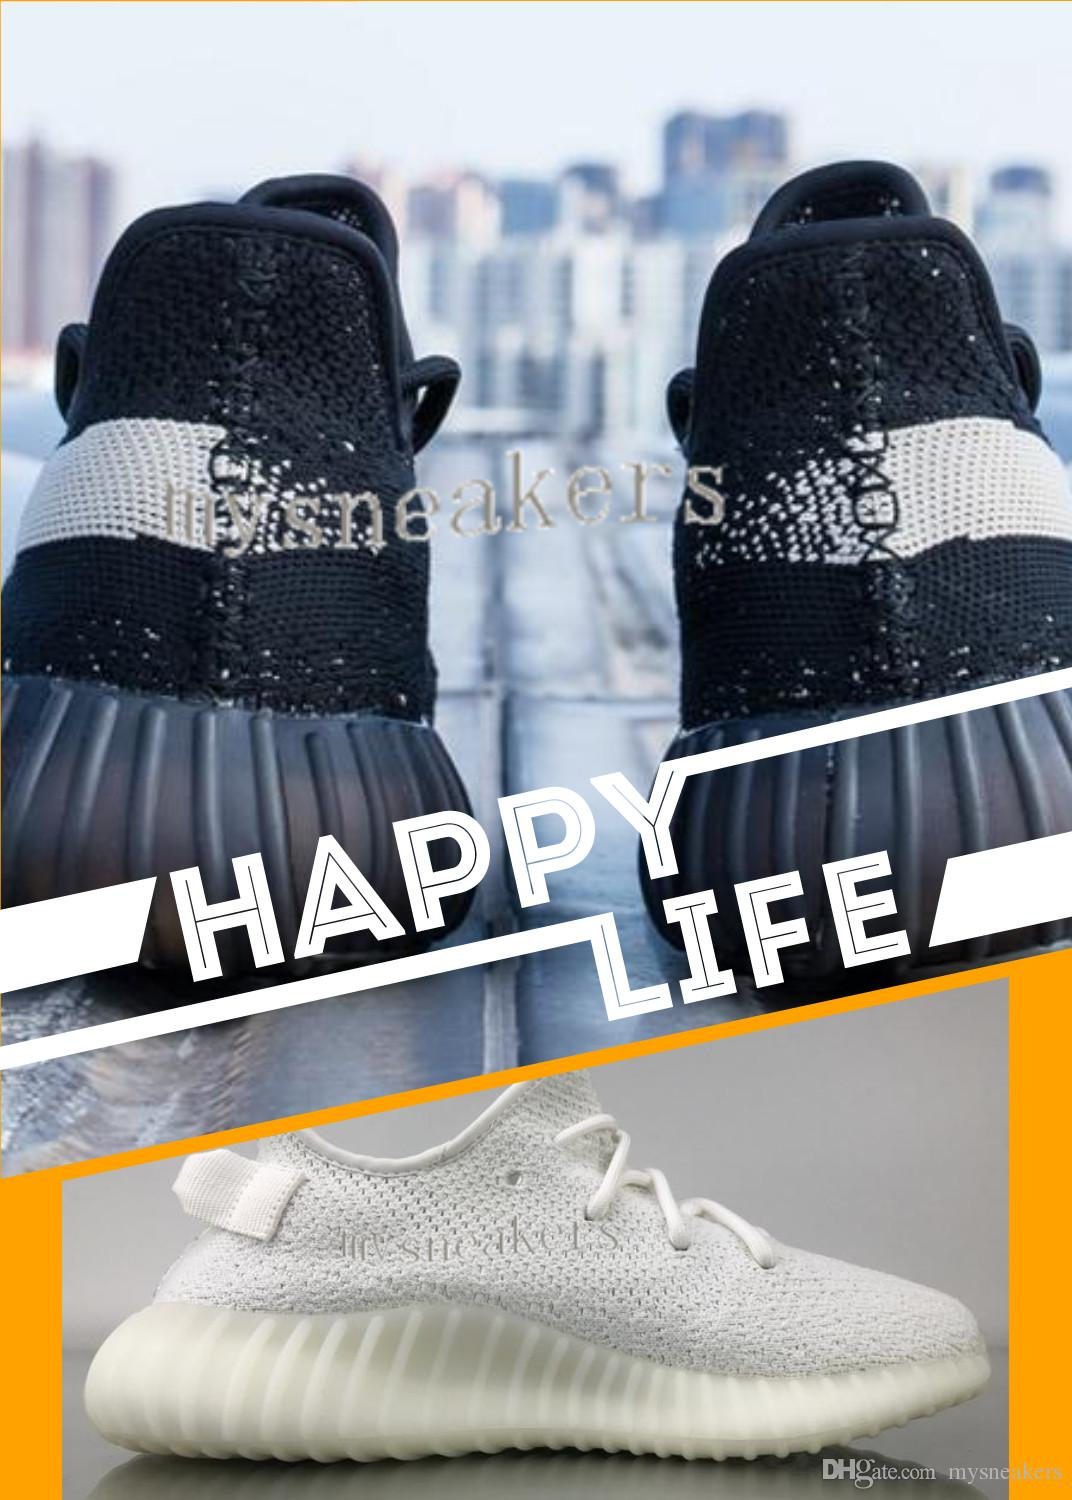 91d082c76 2019 Top Quality V2 Static 3M Butter Sesame Zebra Cream White Blue Tint  Semi Frozen Yellow Beluga Black Red Women Sneakers Running Shoes US5 13  From ...